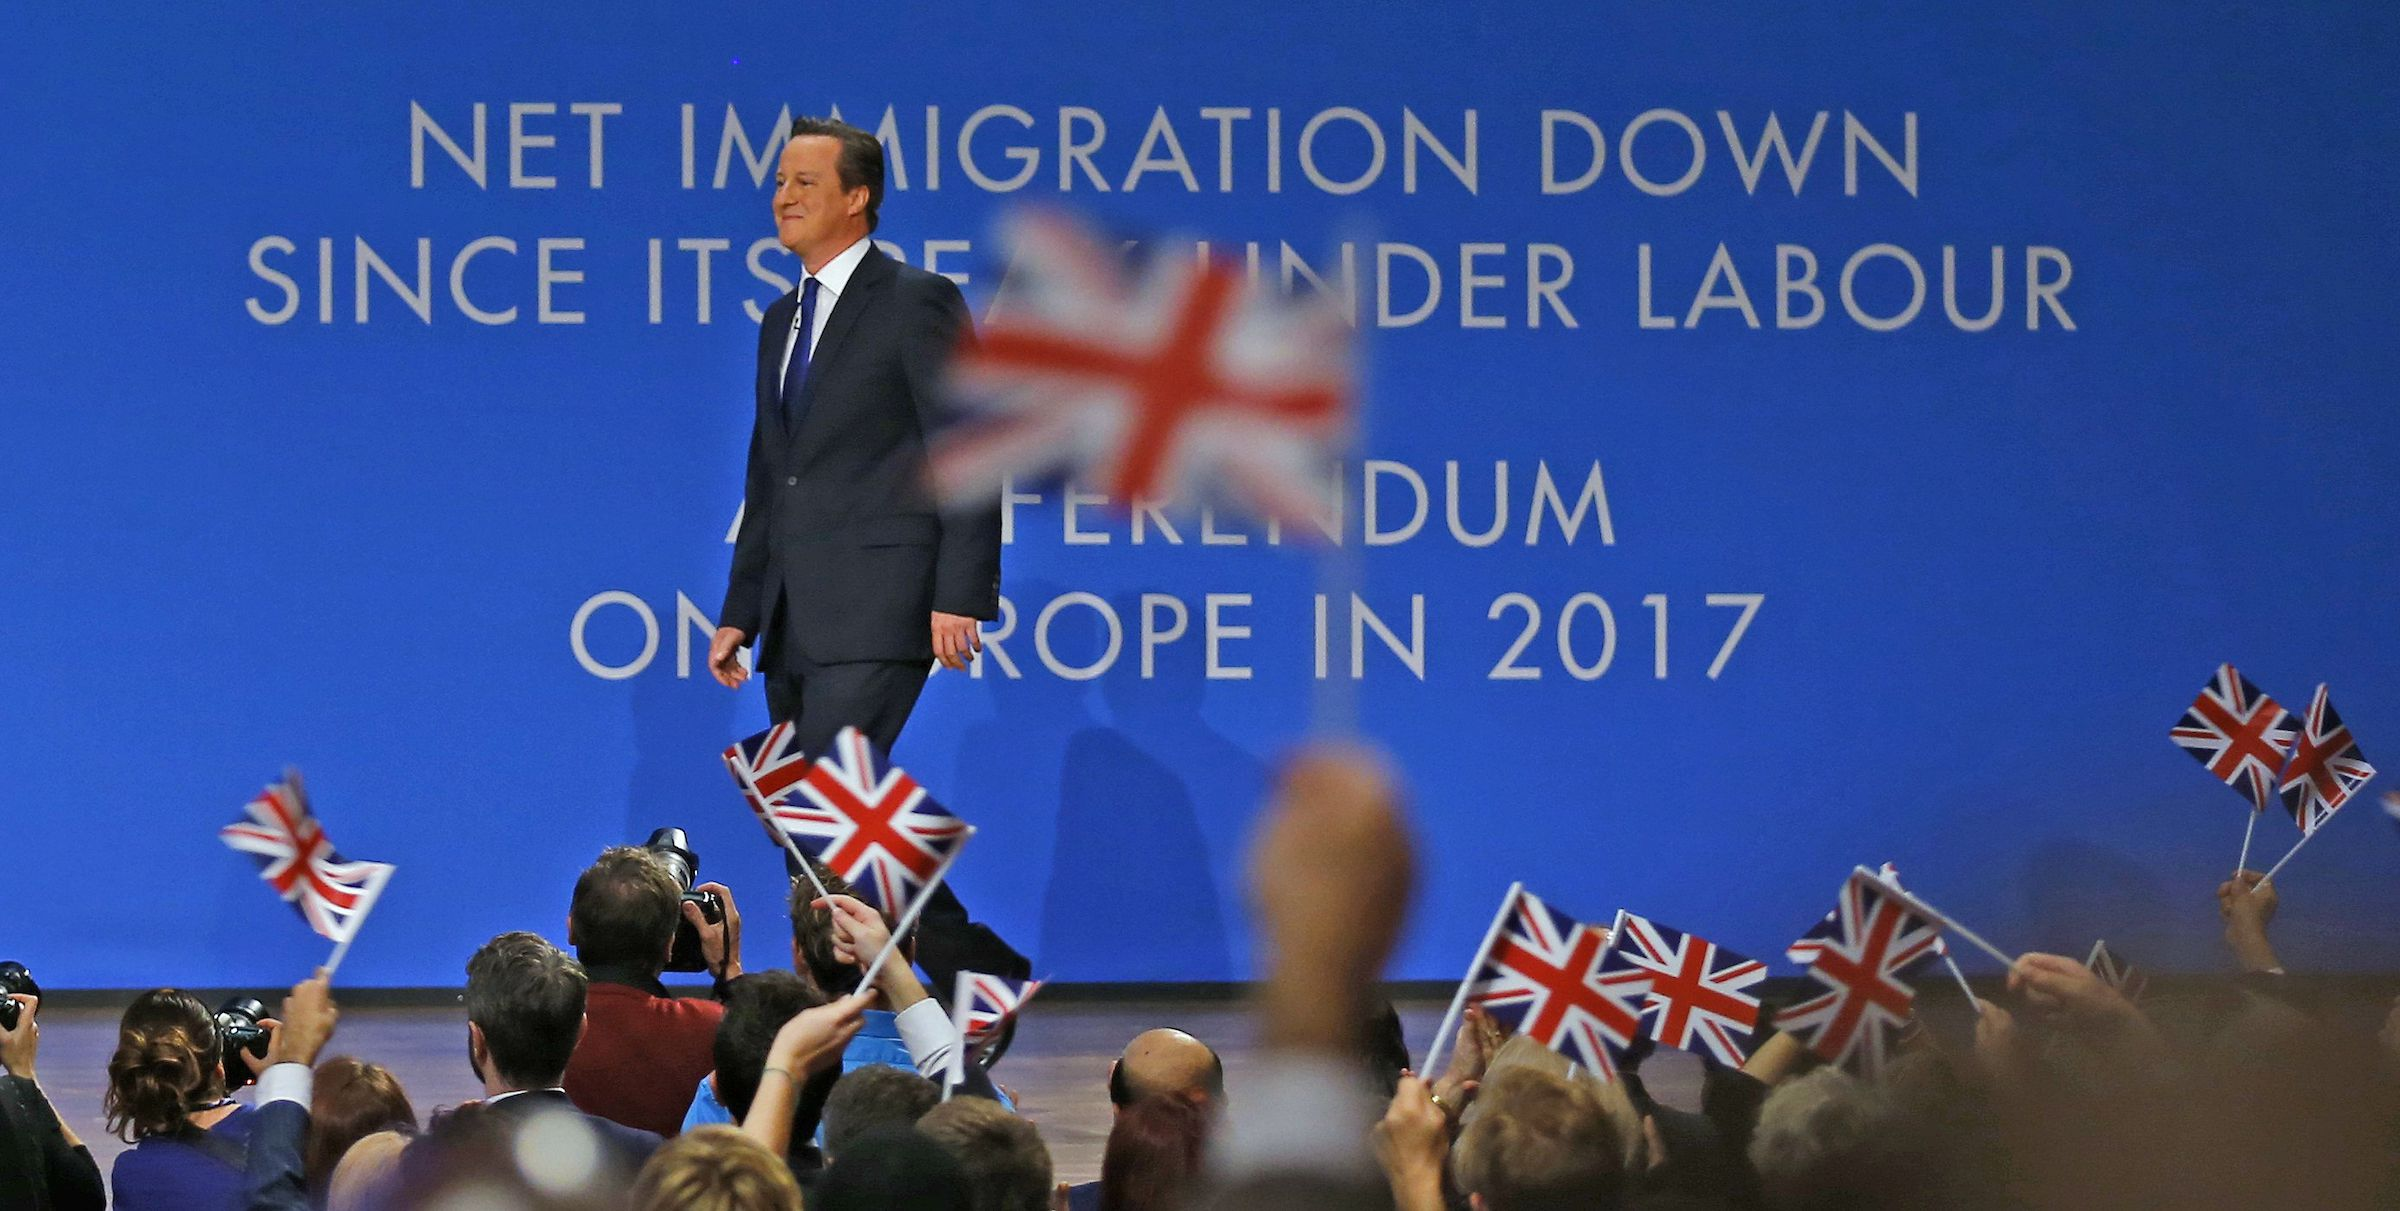 Delegates wave flags as Britain's Prime Minister David Cameron takes to the stage to deliver his keynote address to the Conservative Party Conference in Birmingham, central England October 1, 2014.          REUTERS/Darren Staples (BRITAIN  - Tags: POLITICS)   - RTR48H4K